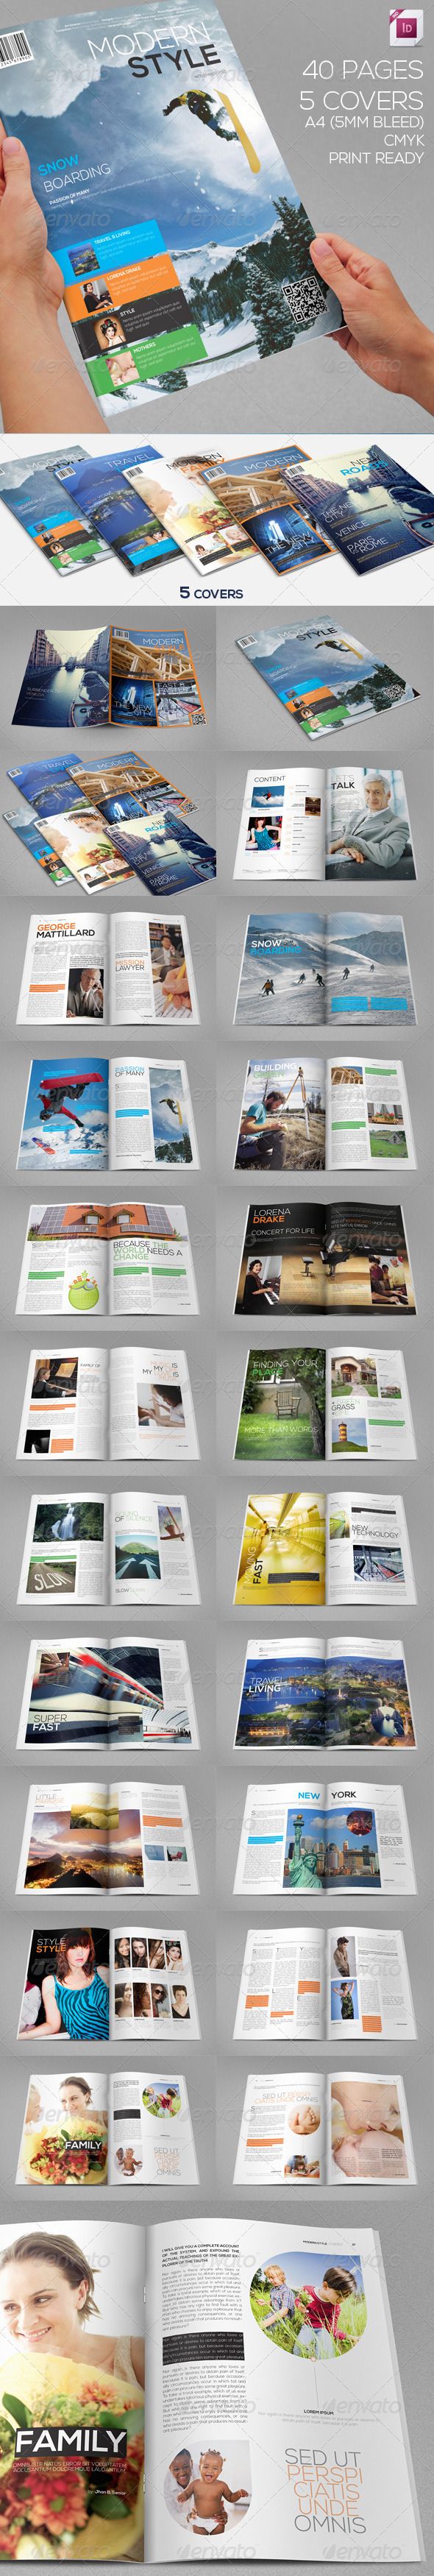 GraphicRiver Modern Style Magazine 40 Pages 5 Covers 3178008